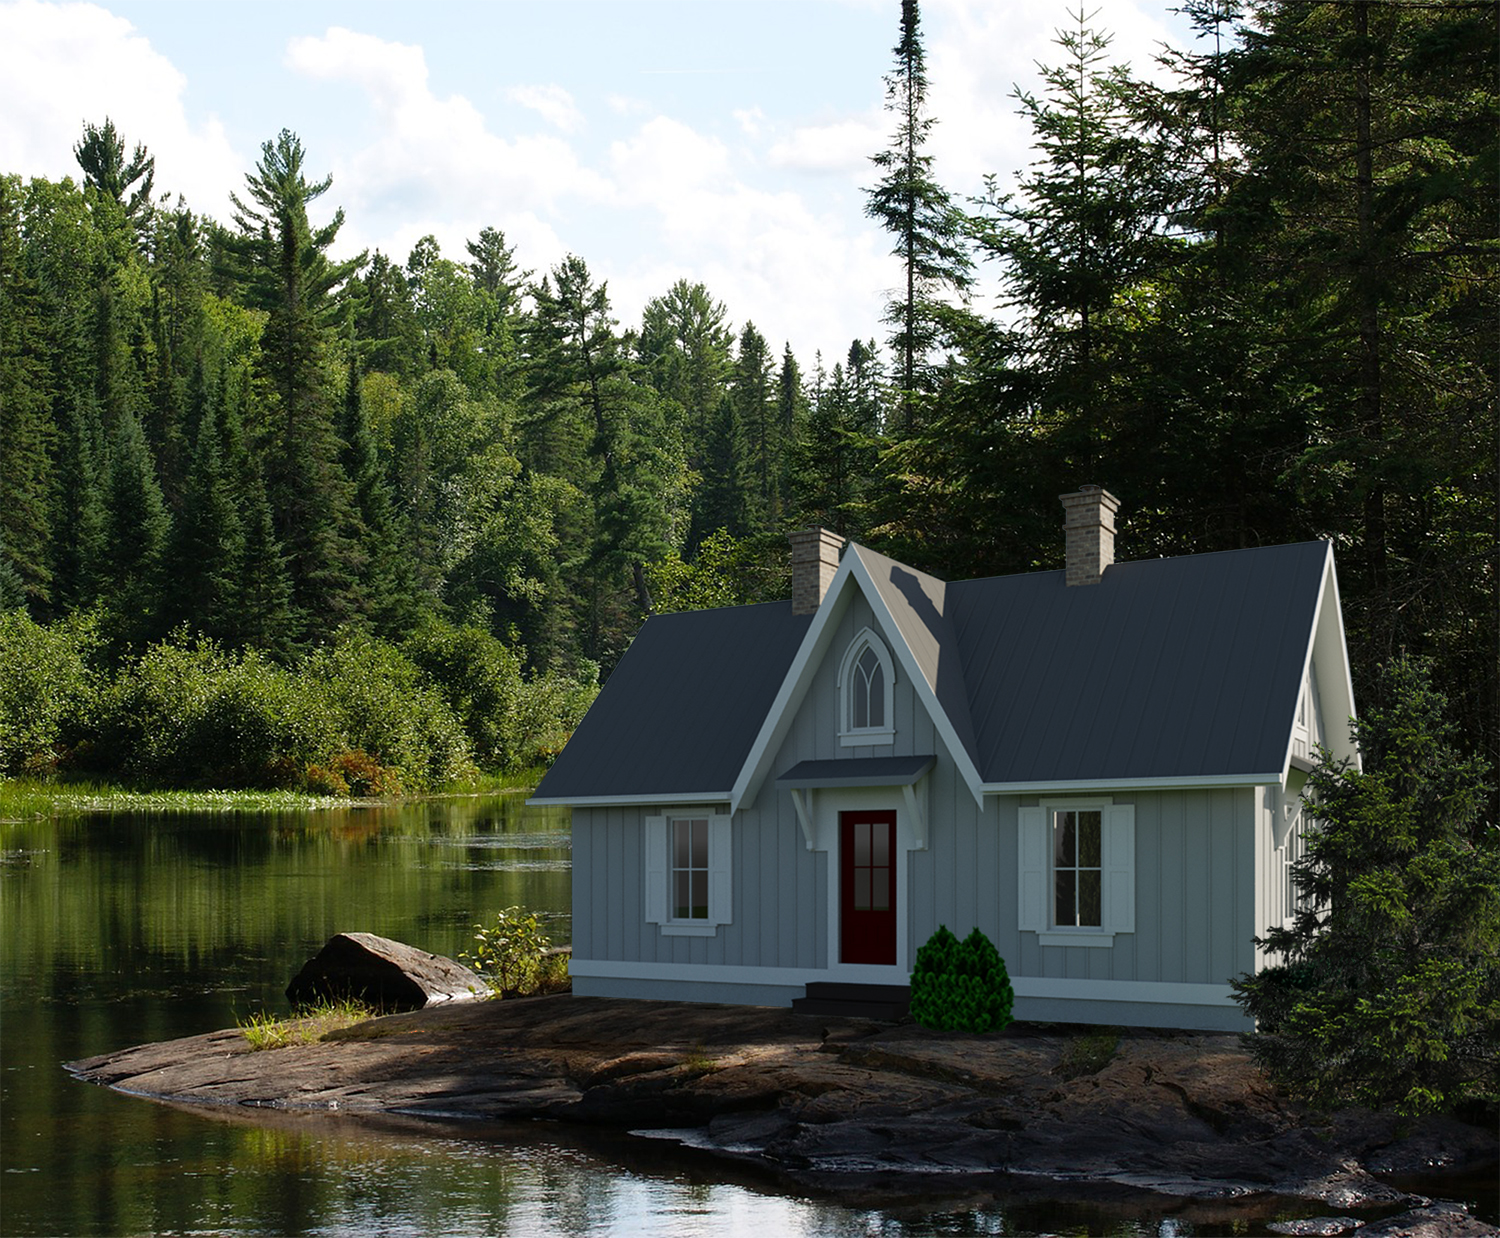 Ontario 504 robinson plans for Small cottage plans canada